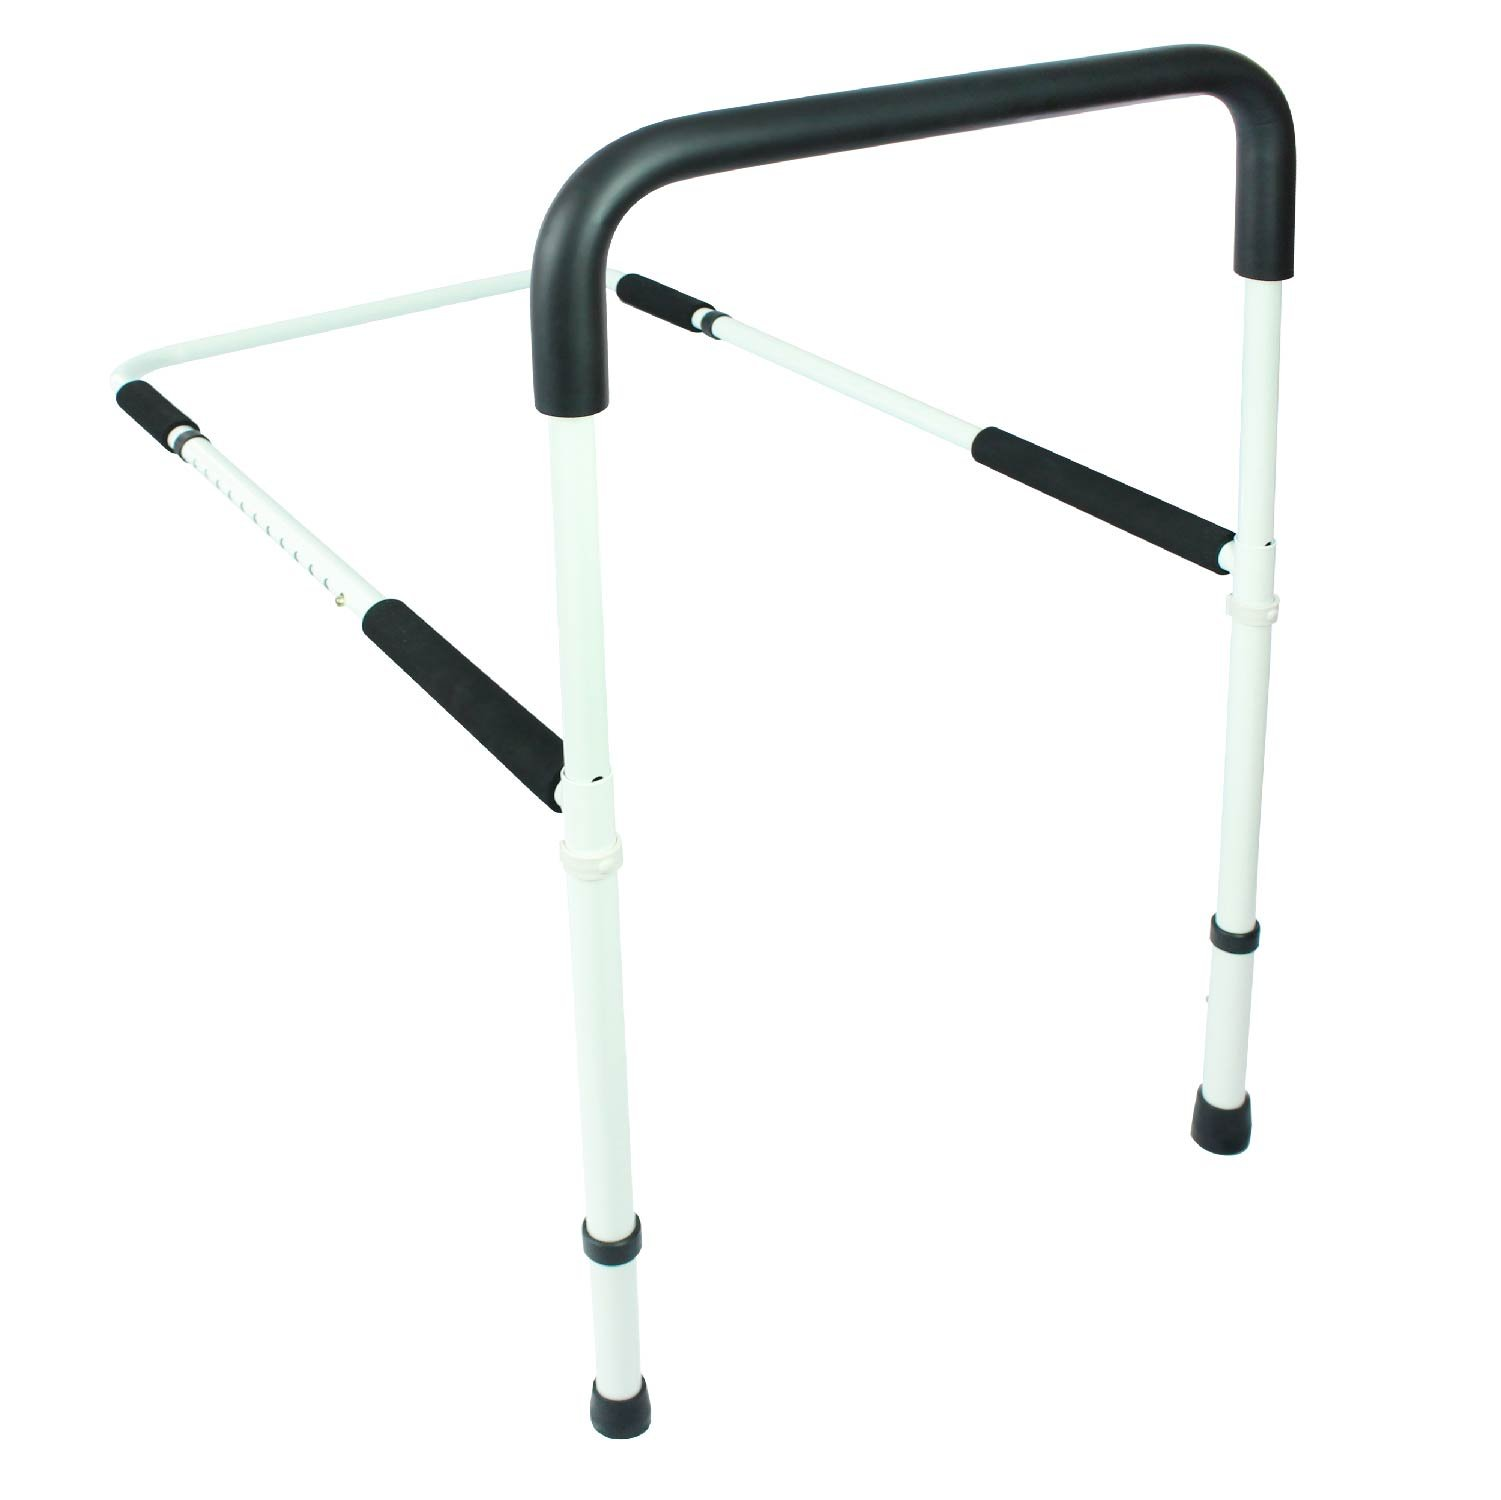 Amazon Com Bed Assist Ladder Sit Up Bed Assist Handle